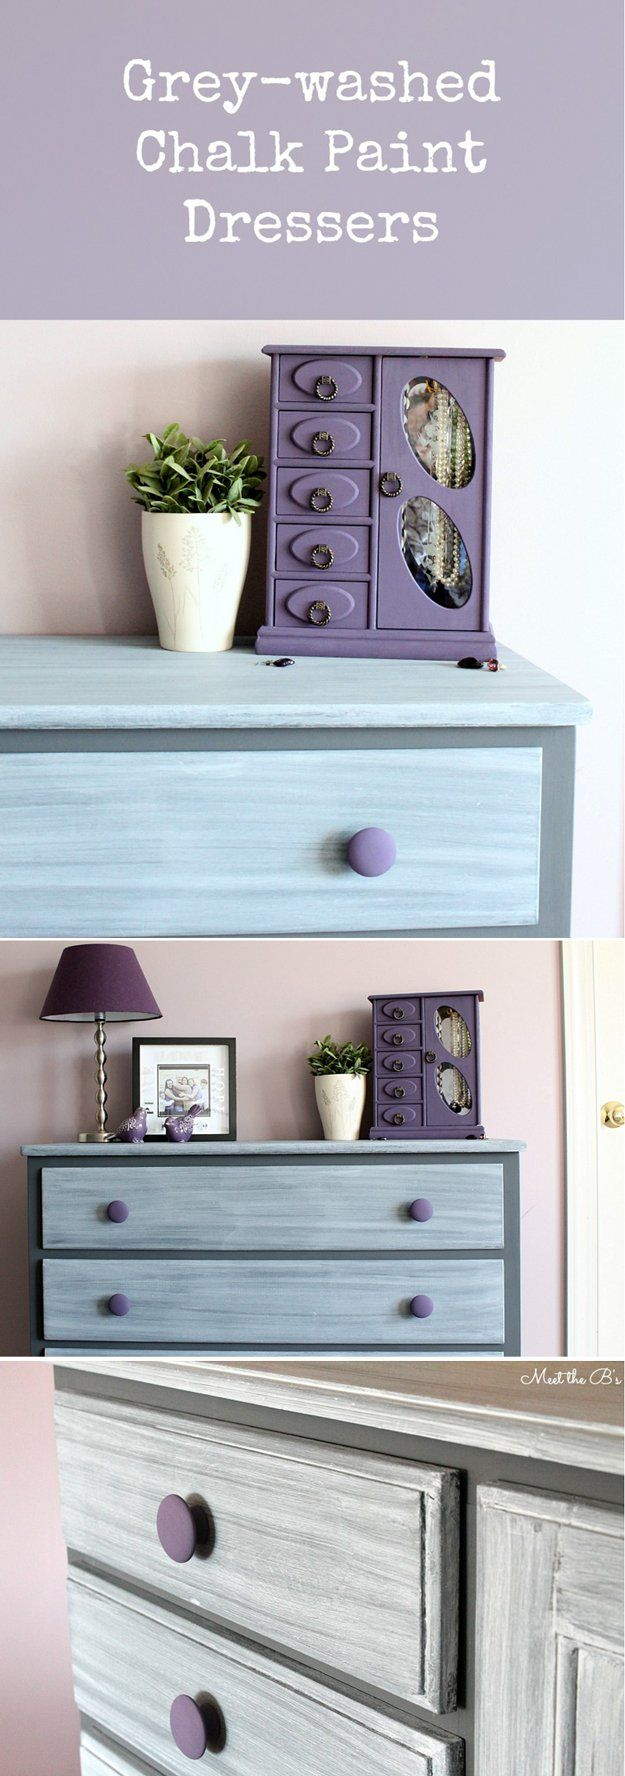 DIY Before and After Dresser Chalk Paint Makeover by DIY Ready at http://diyready.com/16-more-diy-chalk-paint-furniture-ideas/